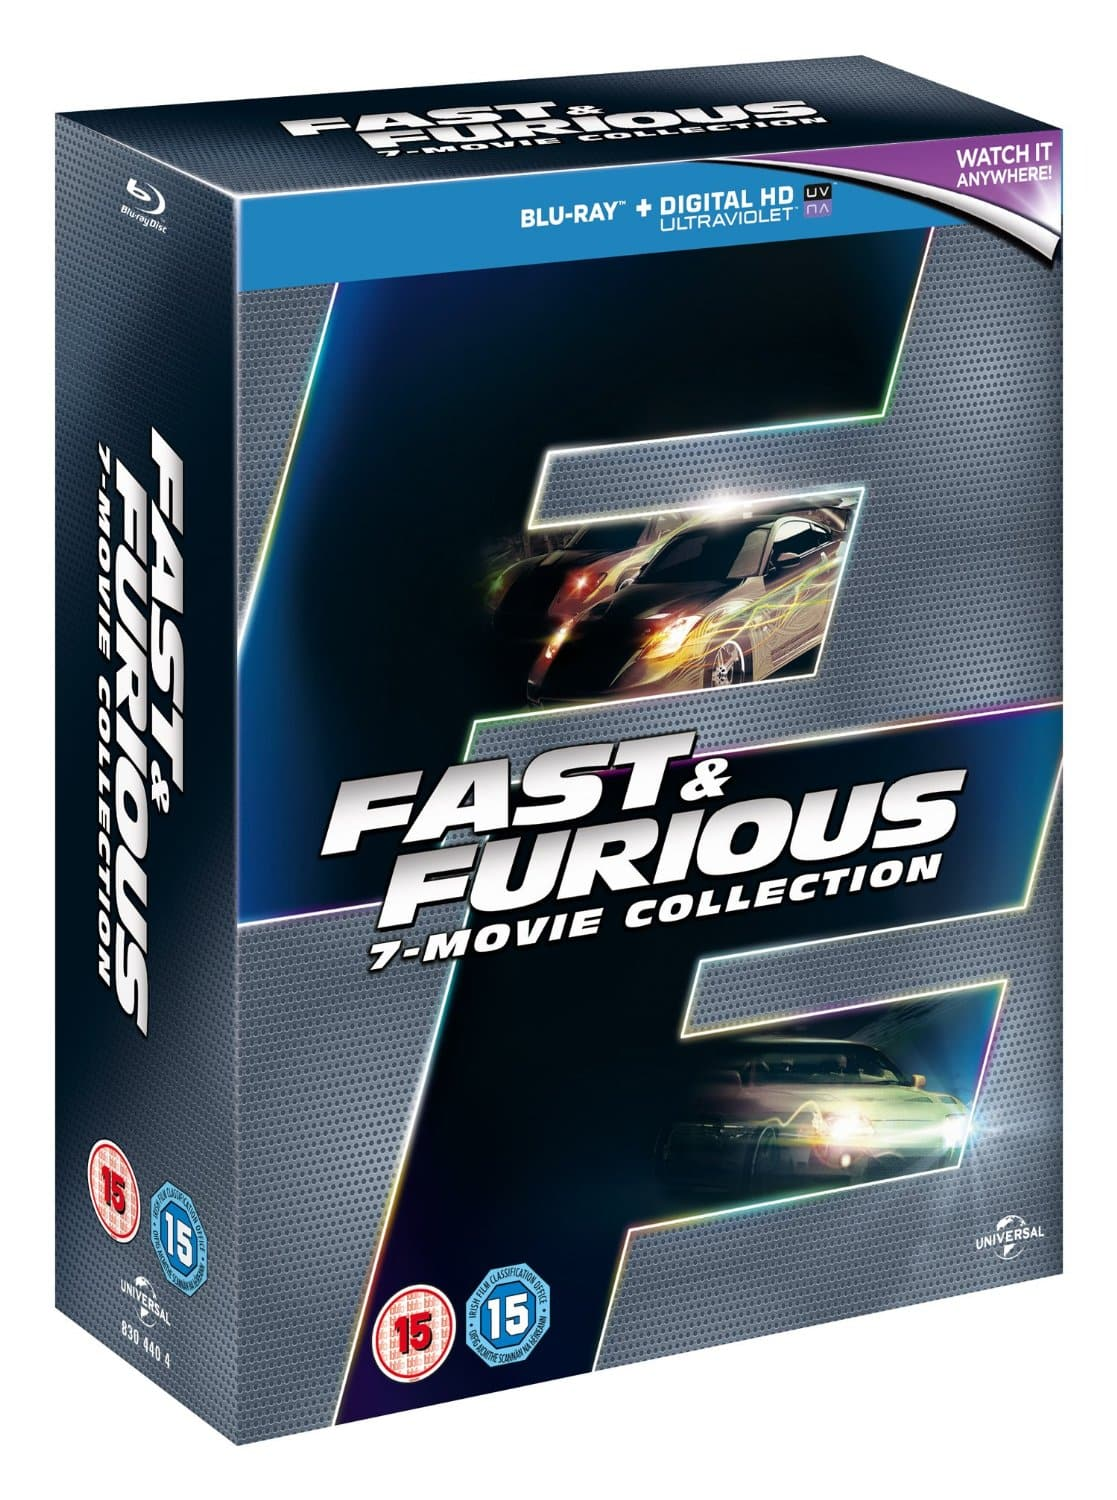 Fast & Furious 7-Movie Collection (Region Free Blu-Ray)  $26.70